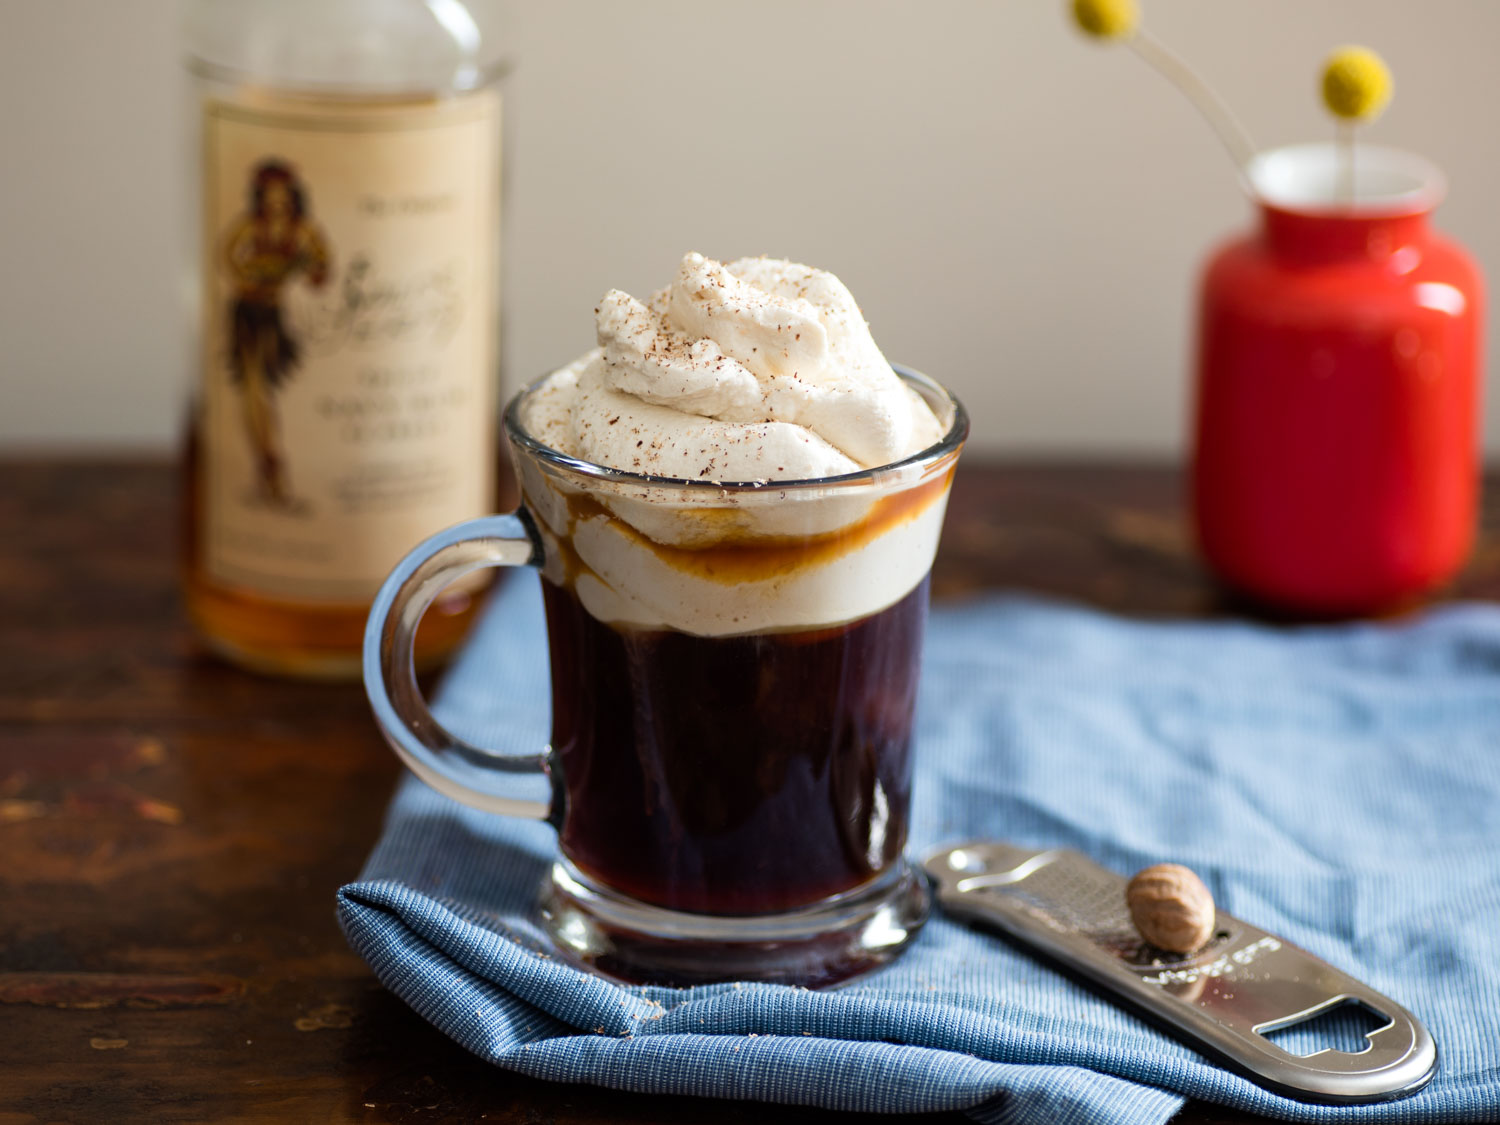 Whiskey adds a different dimension to the Irish Coffee